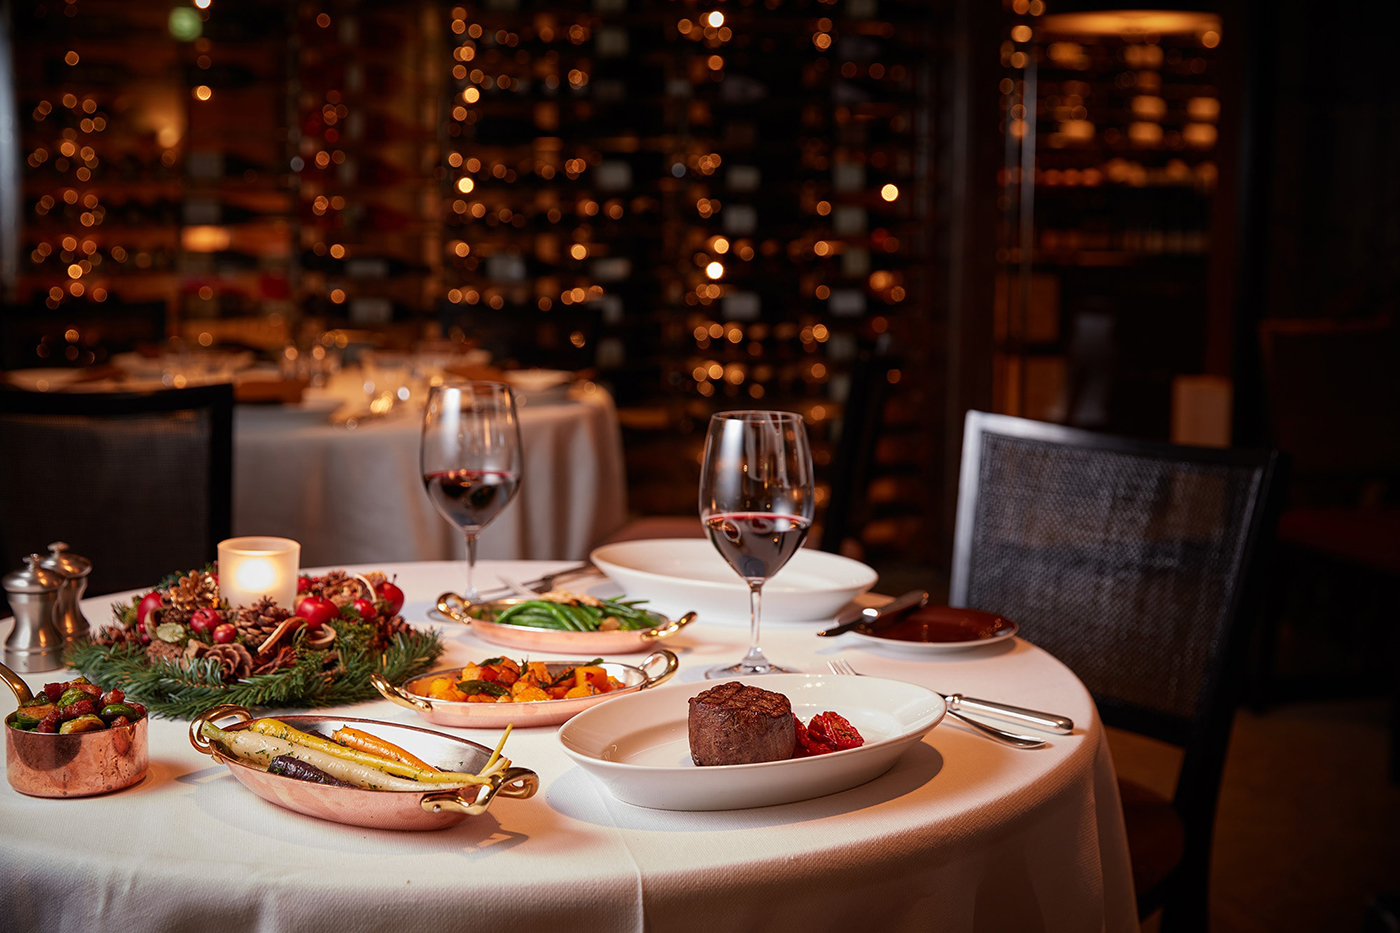 Dinner party ideas at a restaurant